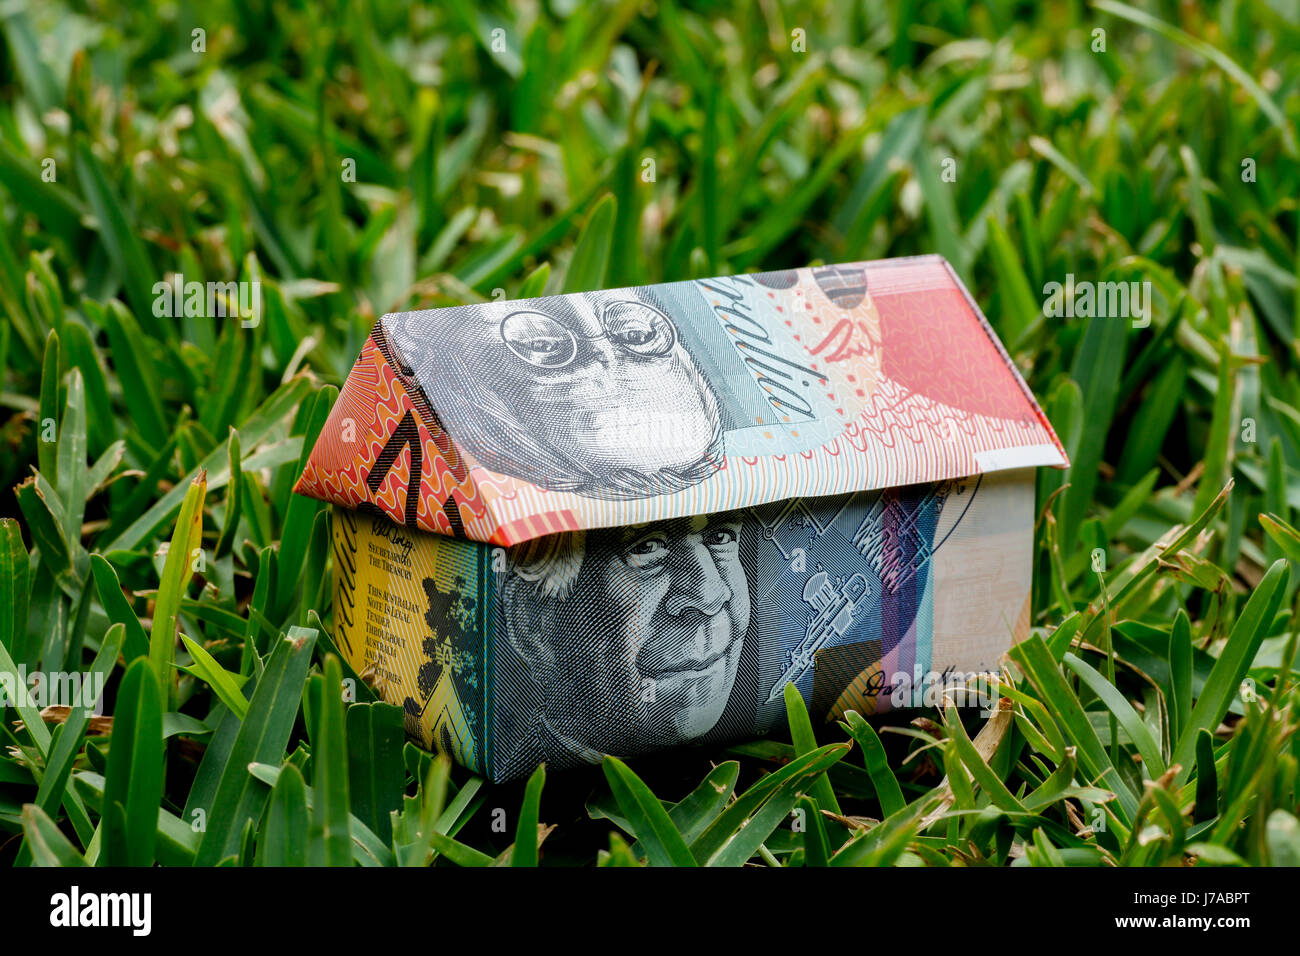 Origami house made with Australian Notes sitting on grass Stock Photo